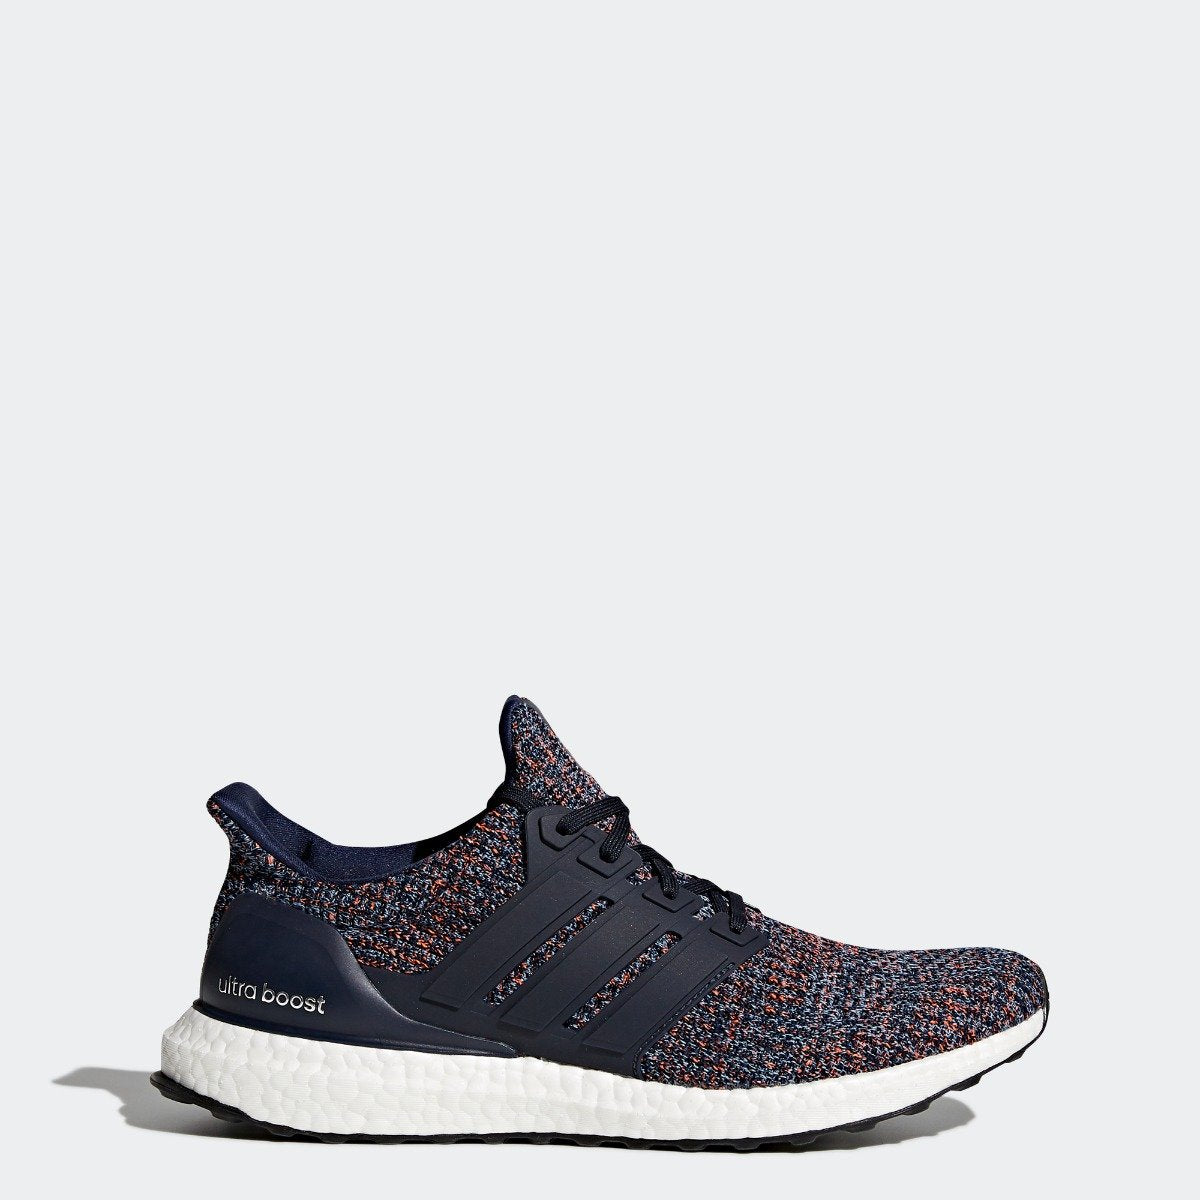 b72c21ab6c22e Men s adidas Running Ultraboost Shoes Collegiate Navy and Ash Blue ...